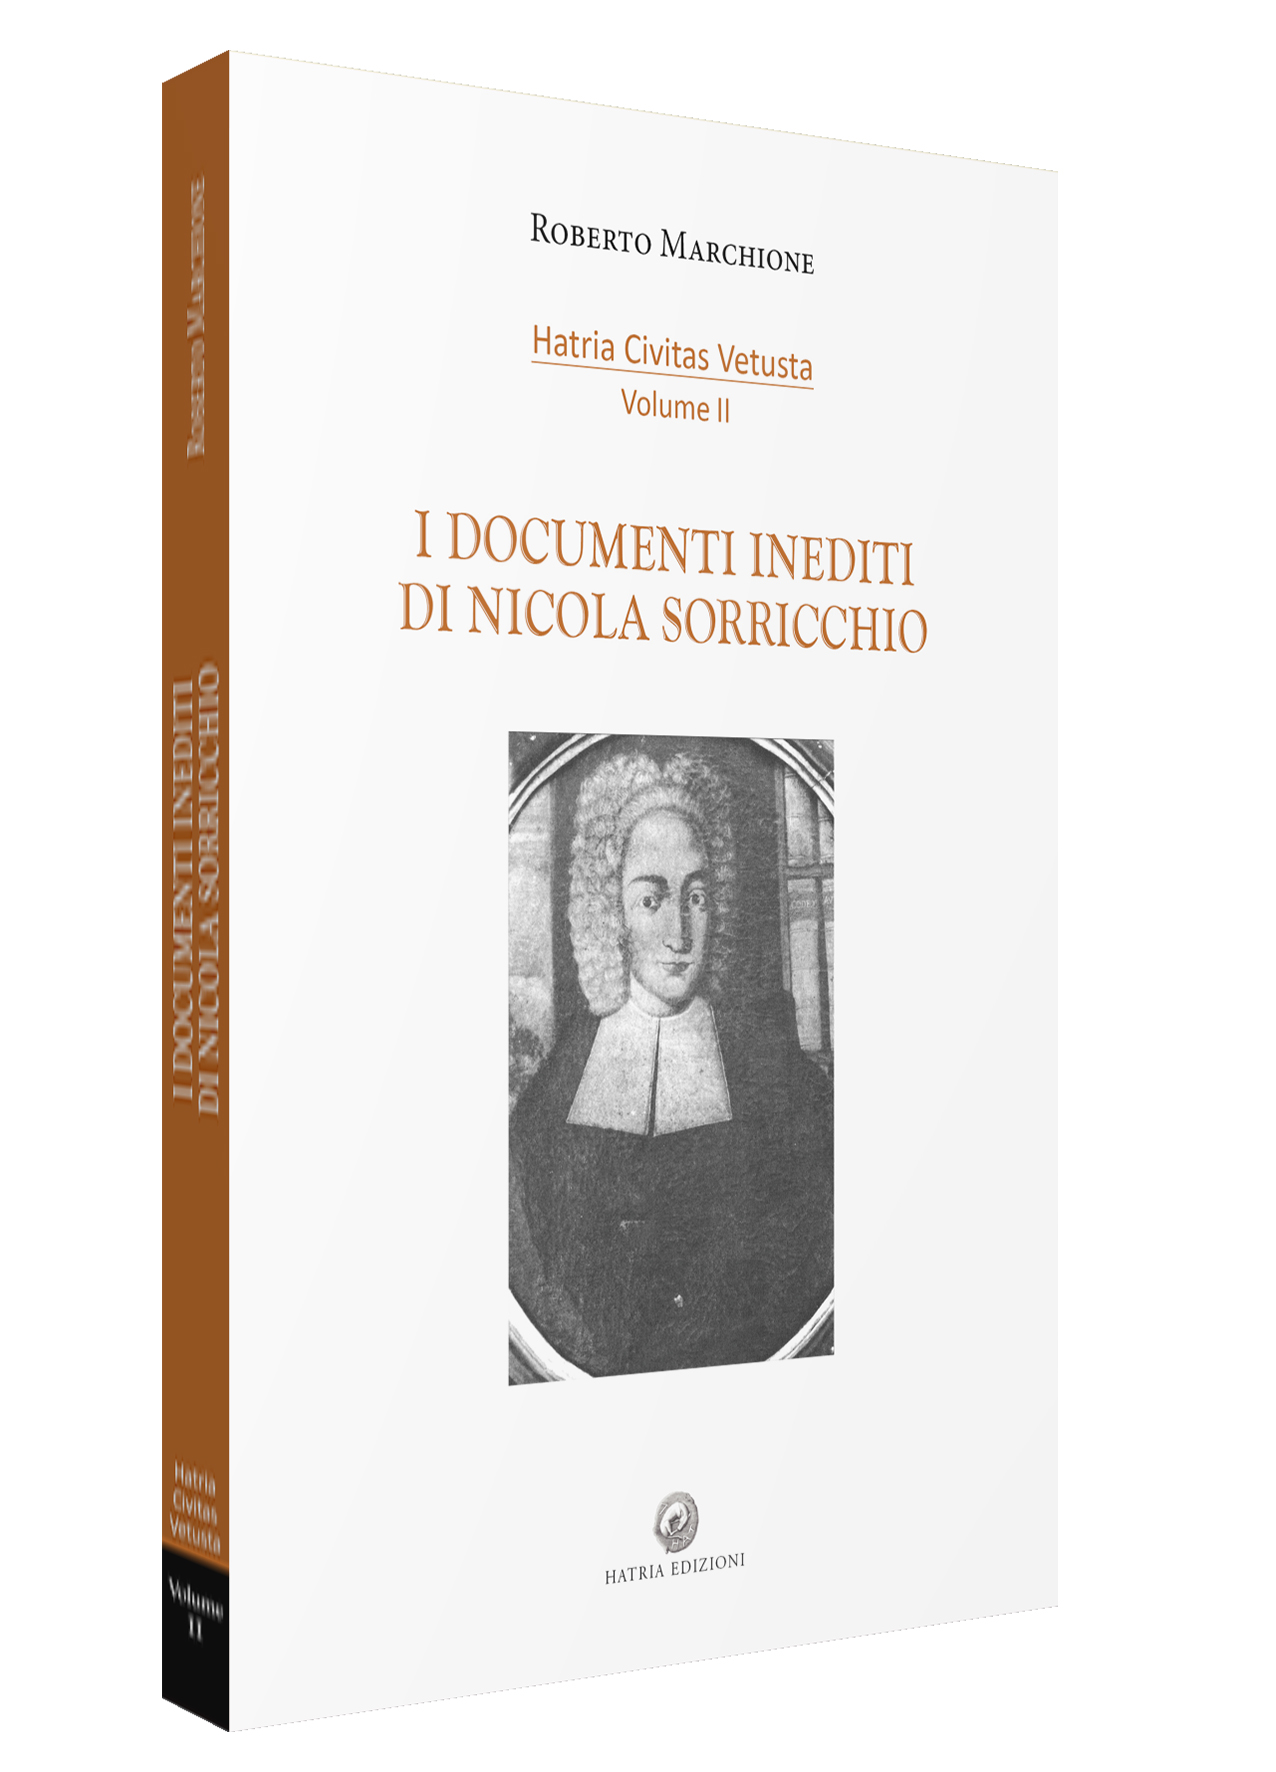 i documenti di Sorricchio marchione